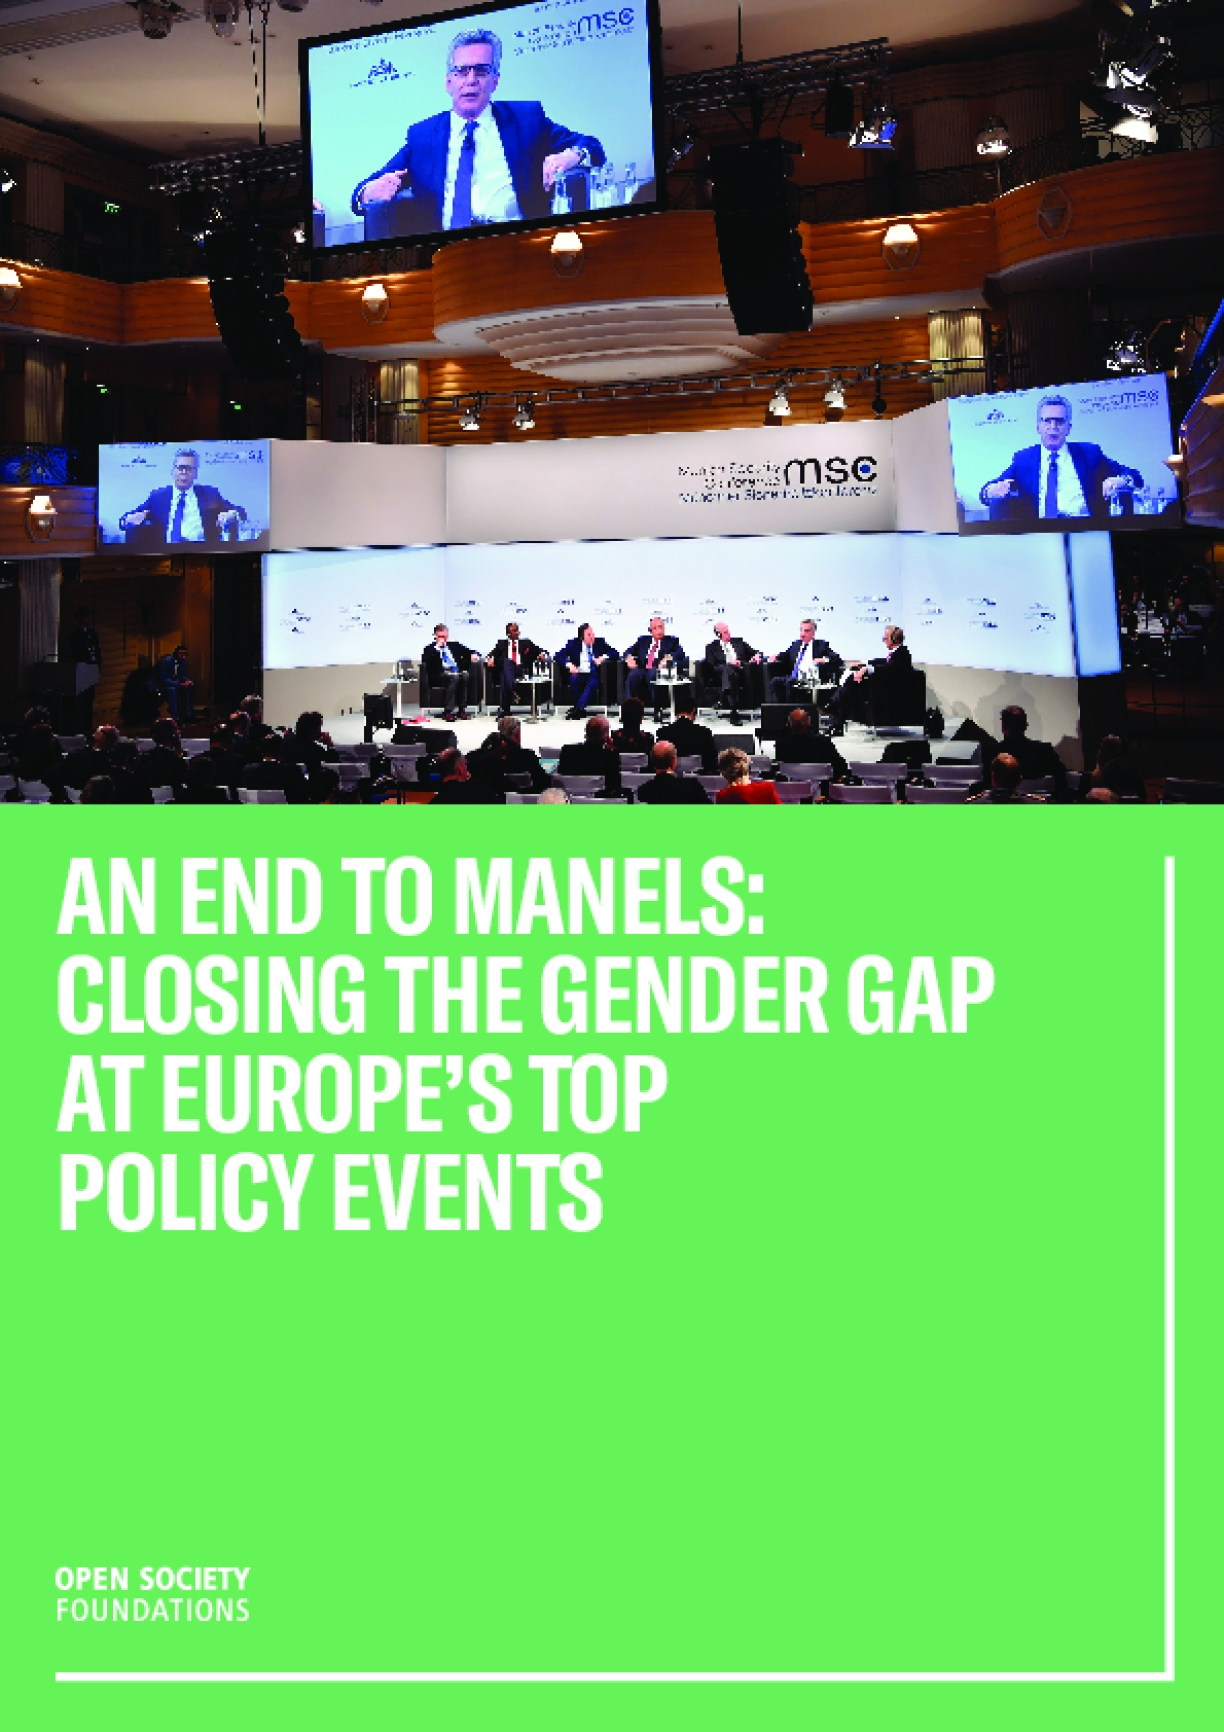 An End to Manels: Closing the Gender Gap at Europe's Top Policy Events